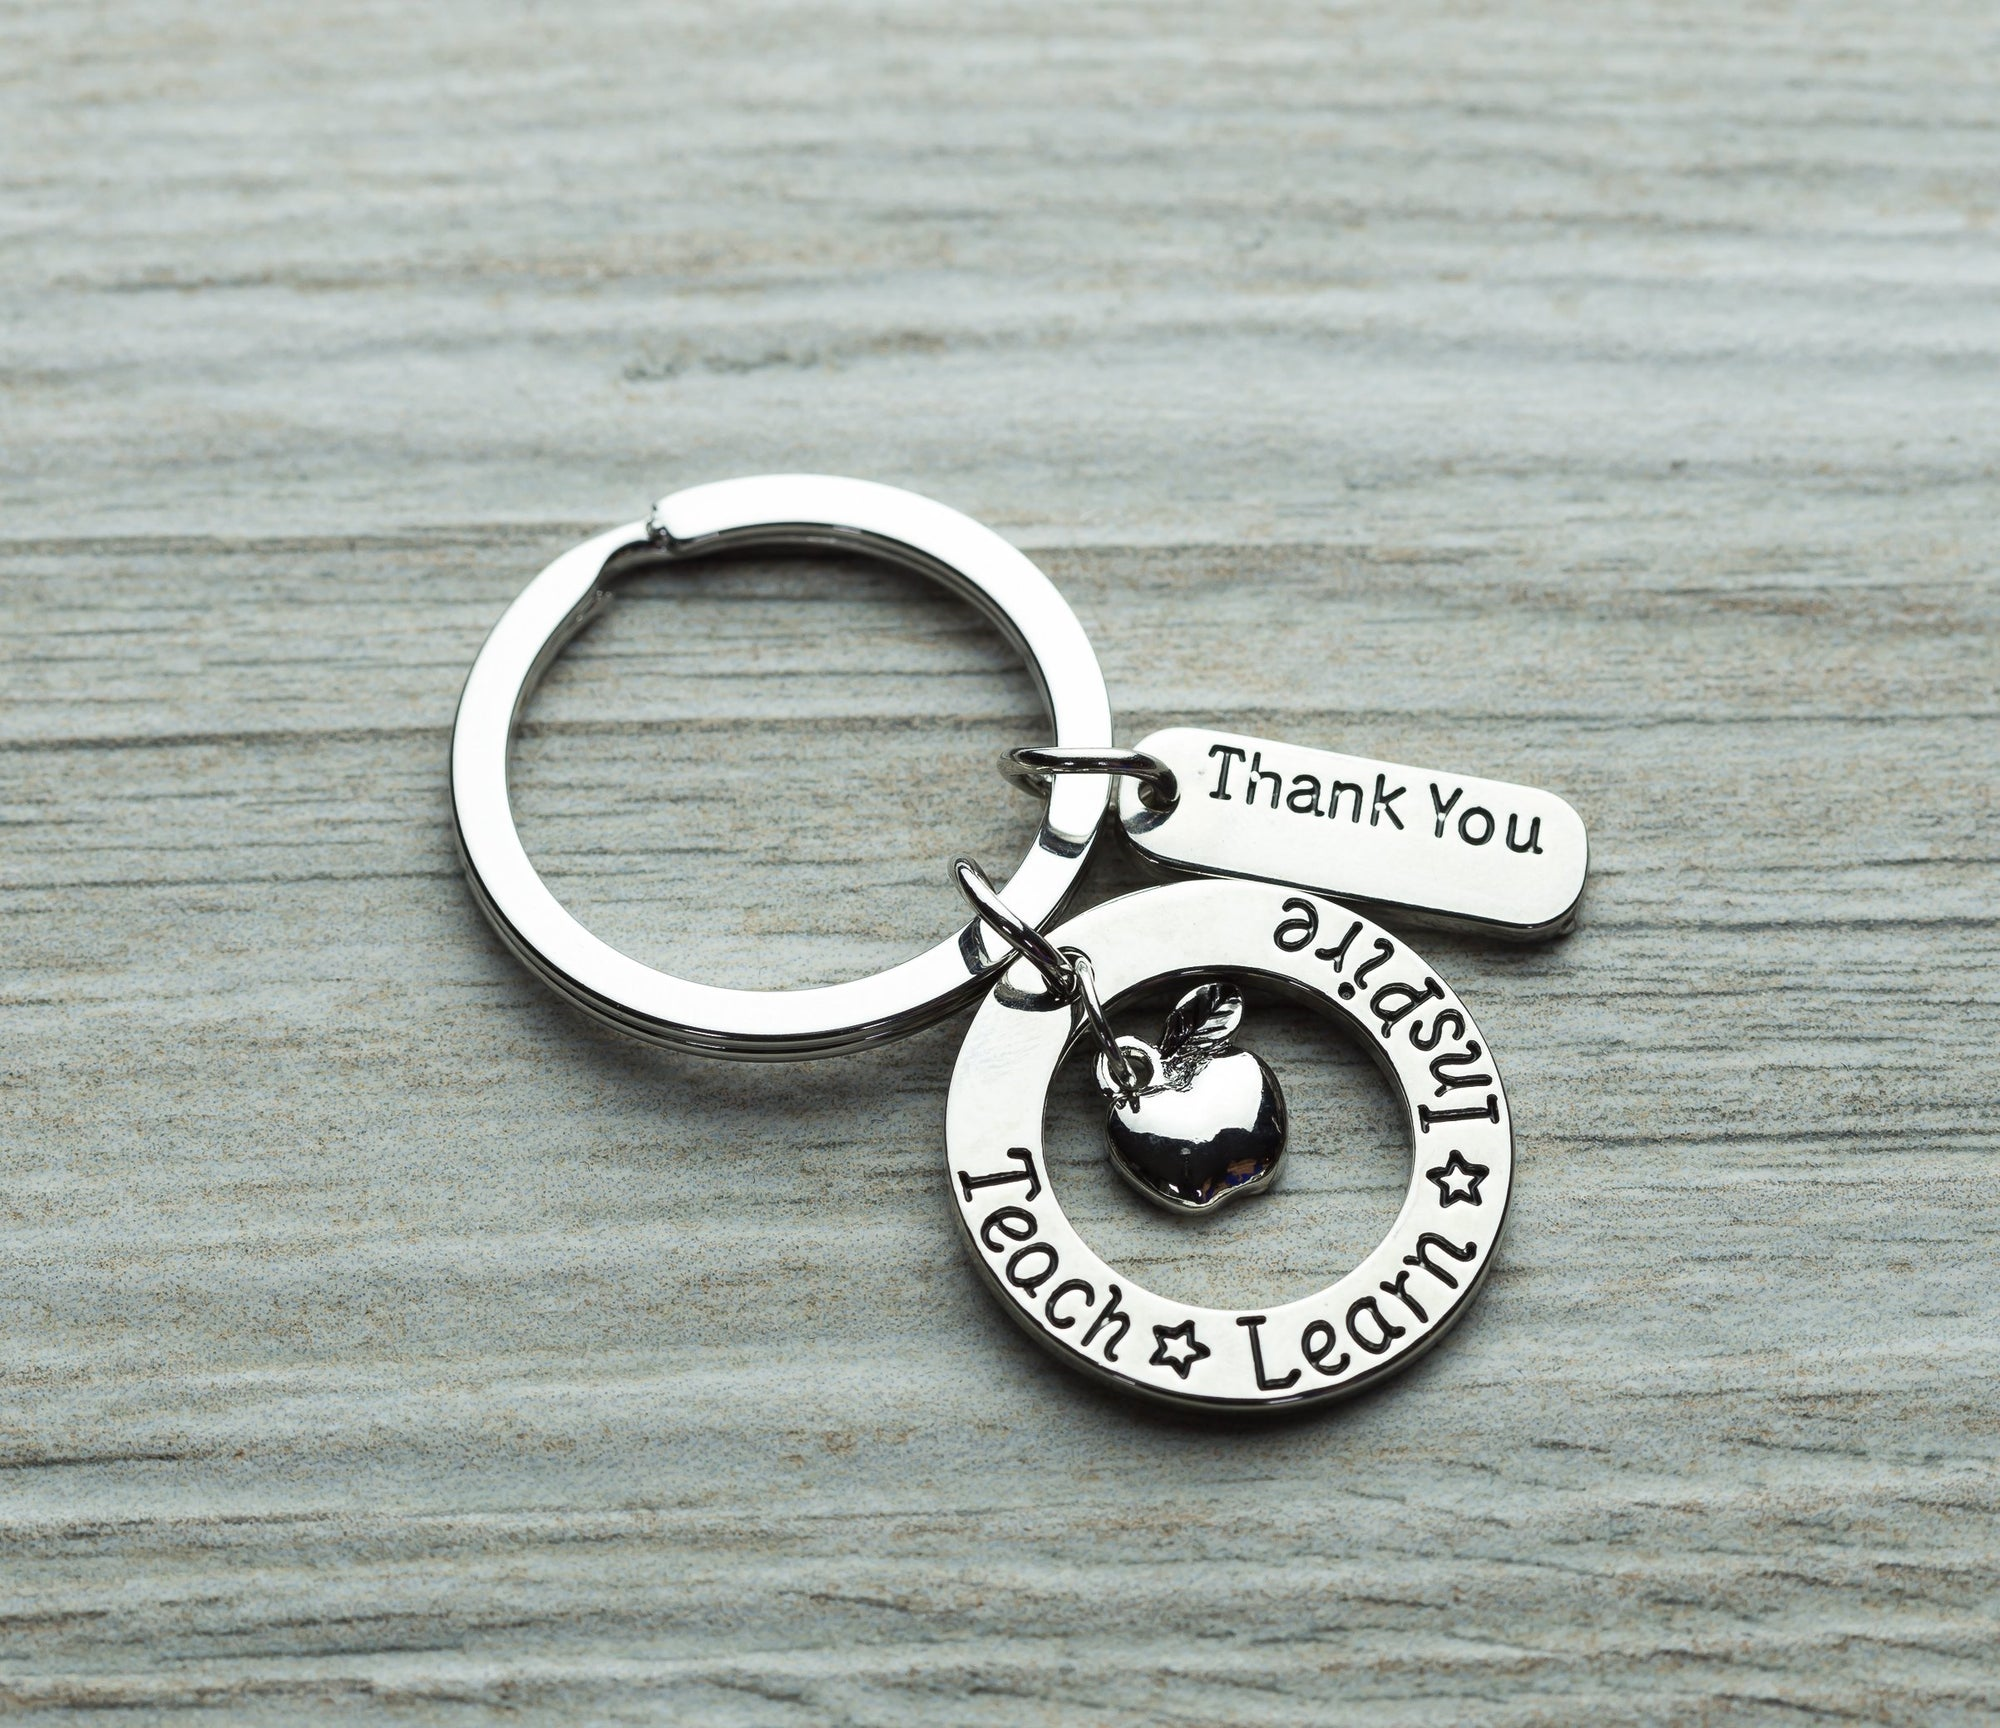 Teach Learn Inspire Keychain